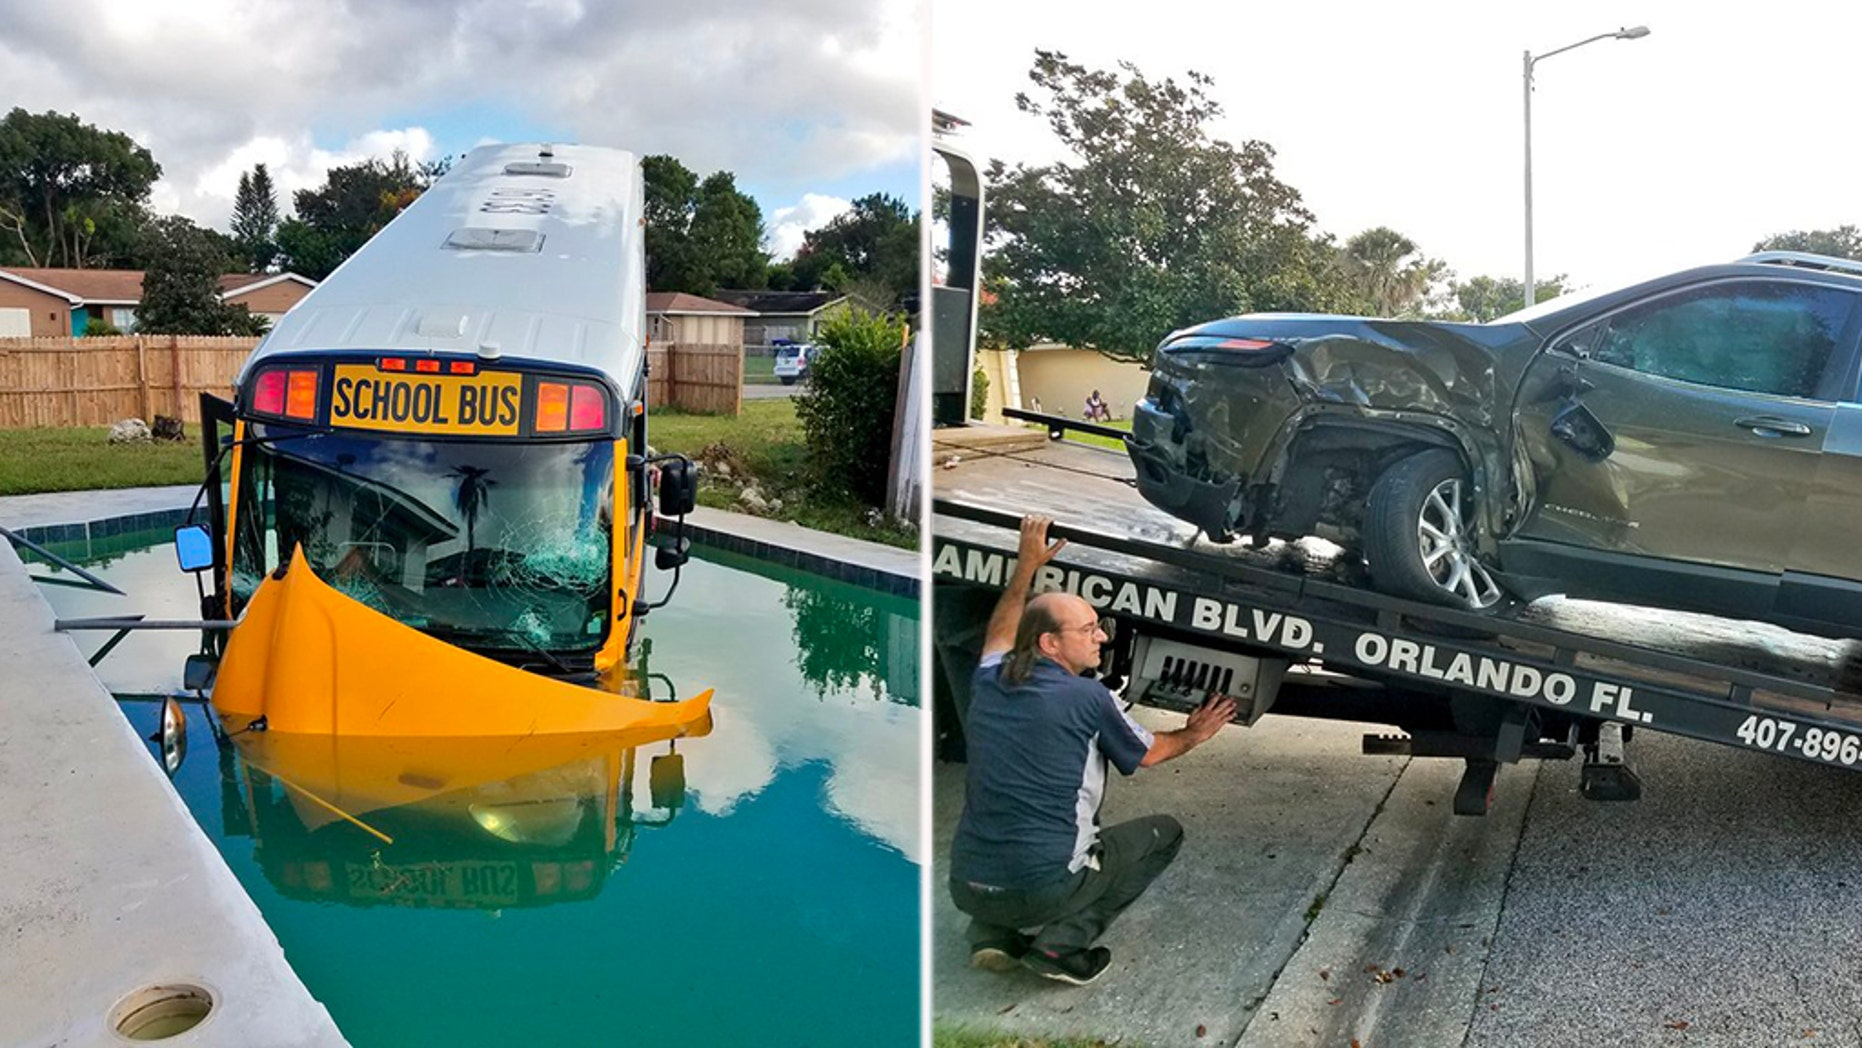 Florida authorities reported to the scene of a crash Friday morning between a Jeep and a school bus, the latter of which ended up nose-first in a swimming pool, officials said.